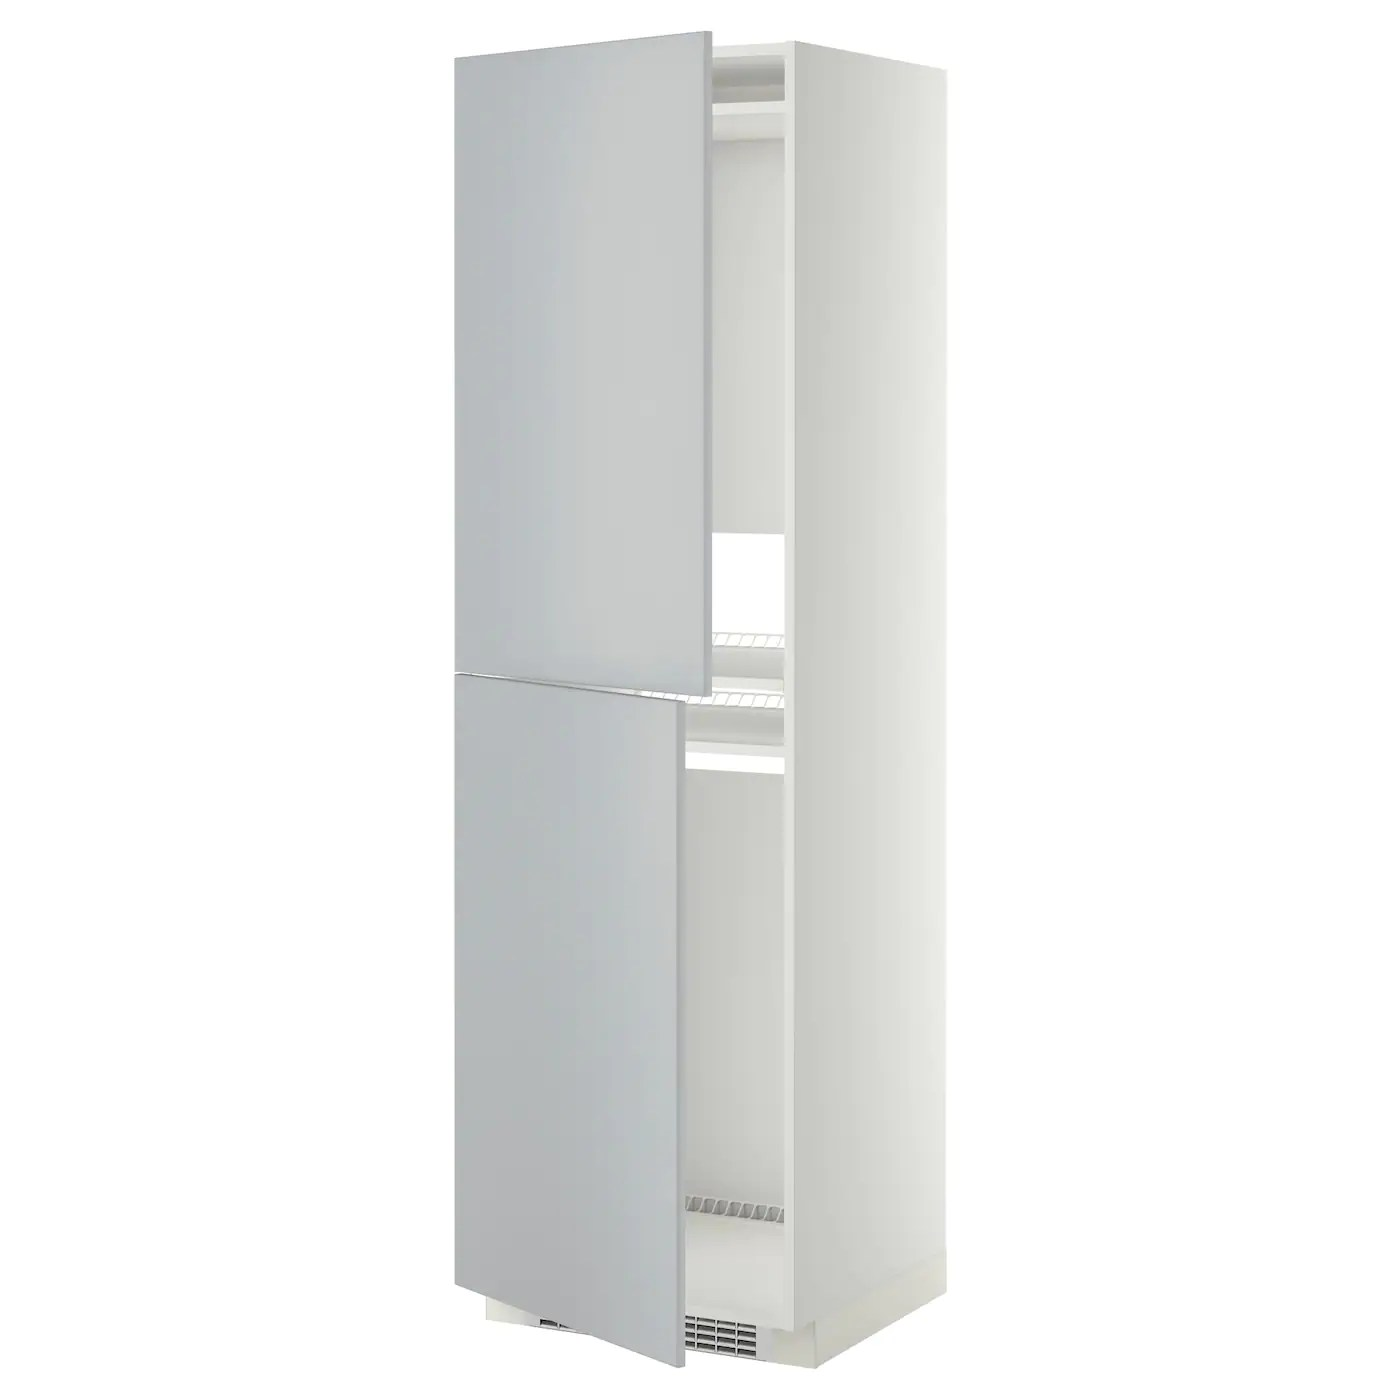 Metod High Cabinet For Fridge Freezer White Veddinge Grey 60 X 60 X 200 Cm Ikea - Ikea Vorhänge Trockner